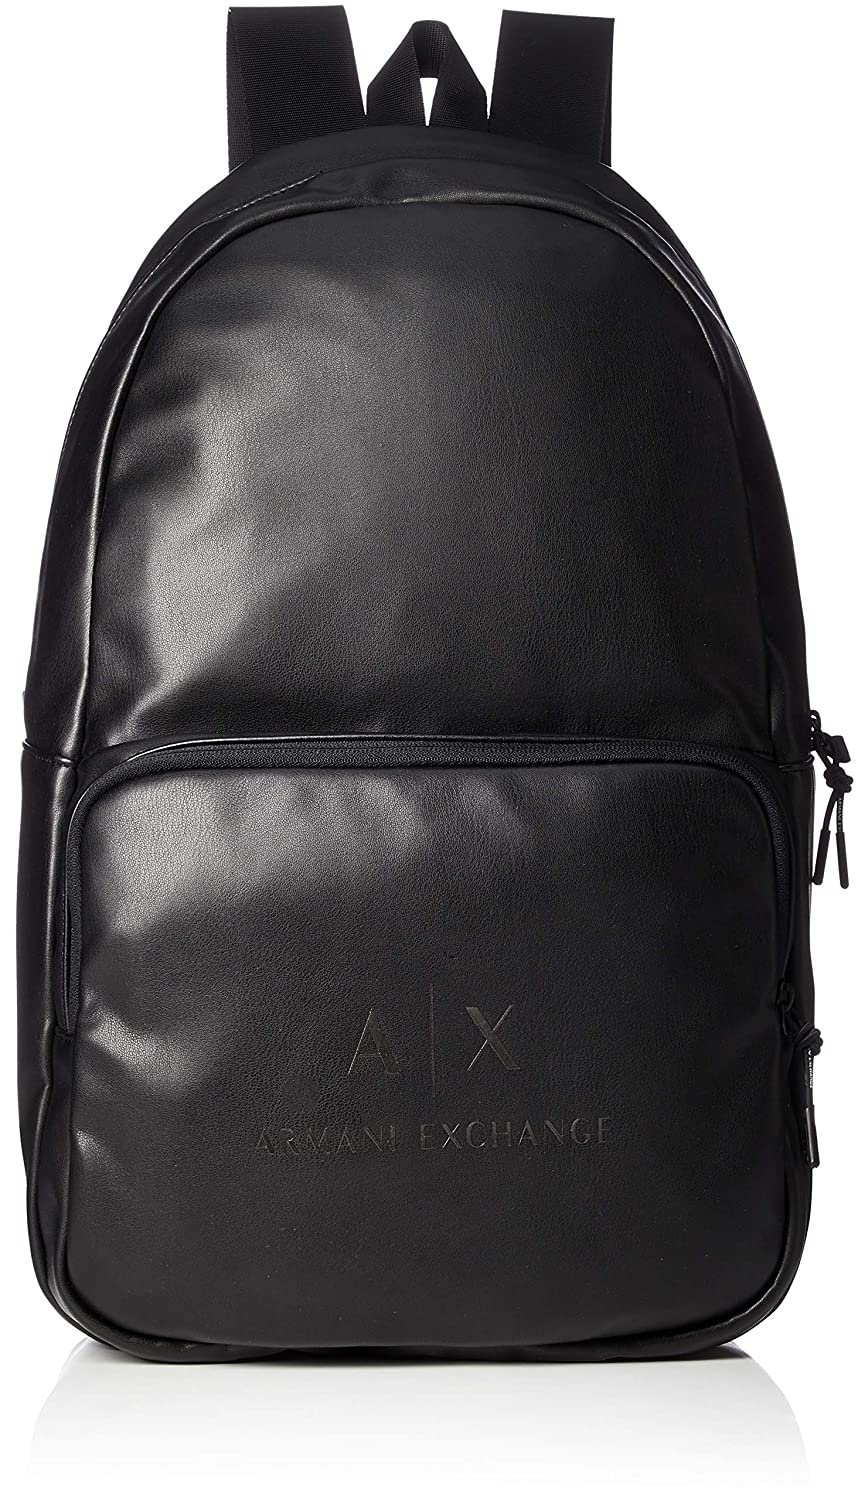 2b08c722570 Amazon.com  Armani Exchange Men s Backpack with Front Zipper and Logo